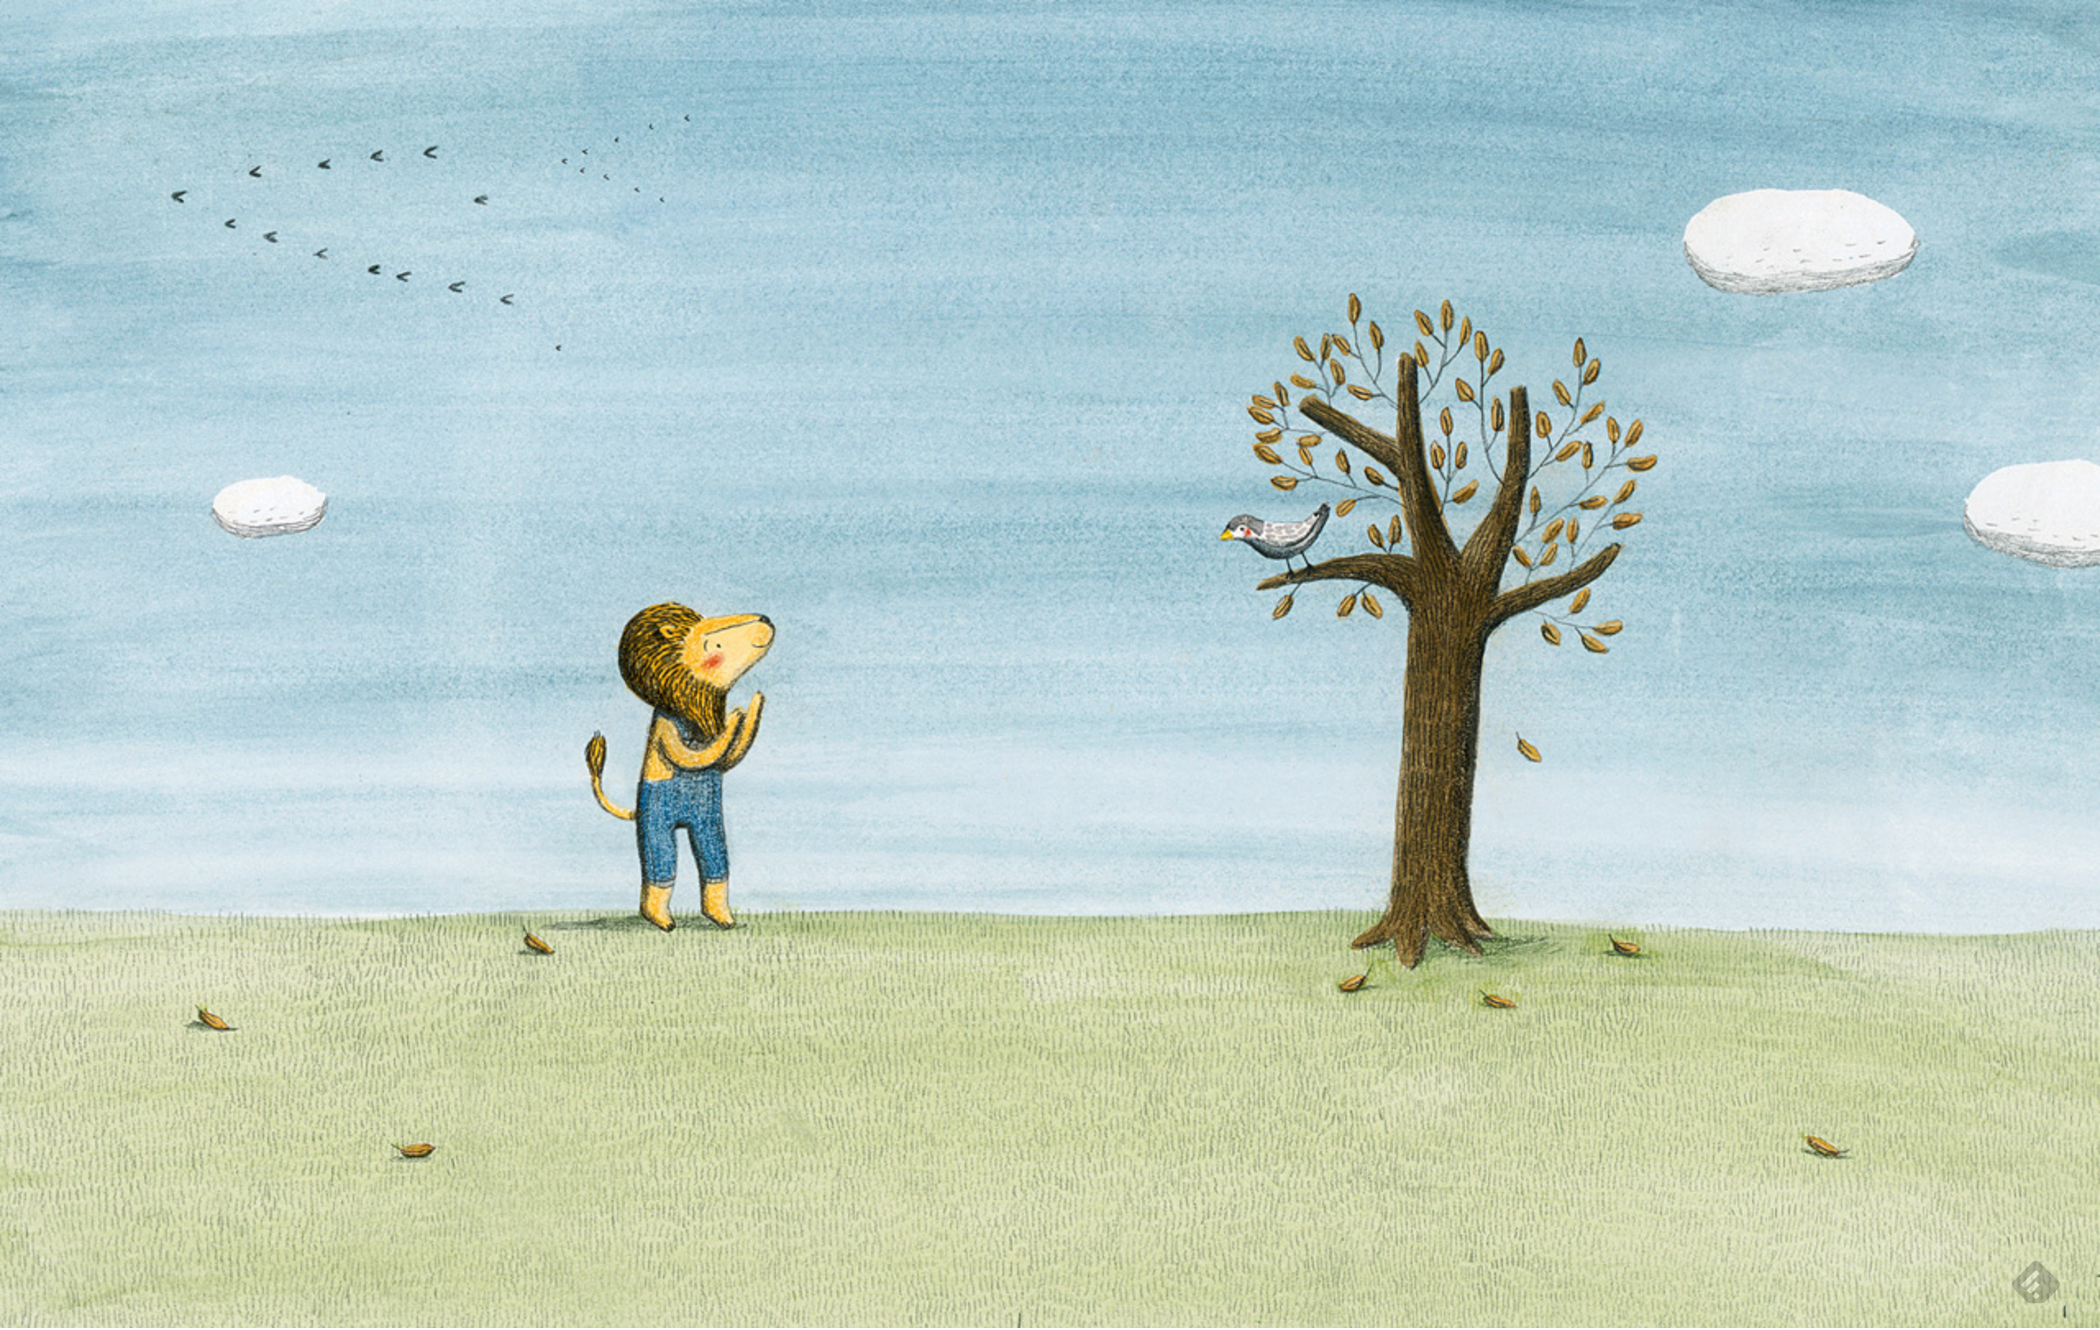 From The Lion and the Bird by Marianne Dubuc